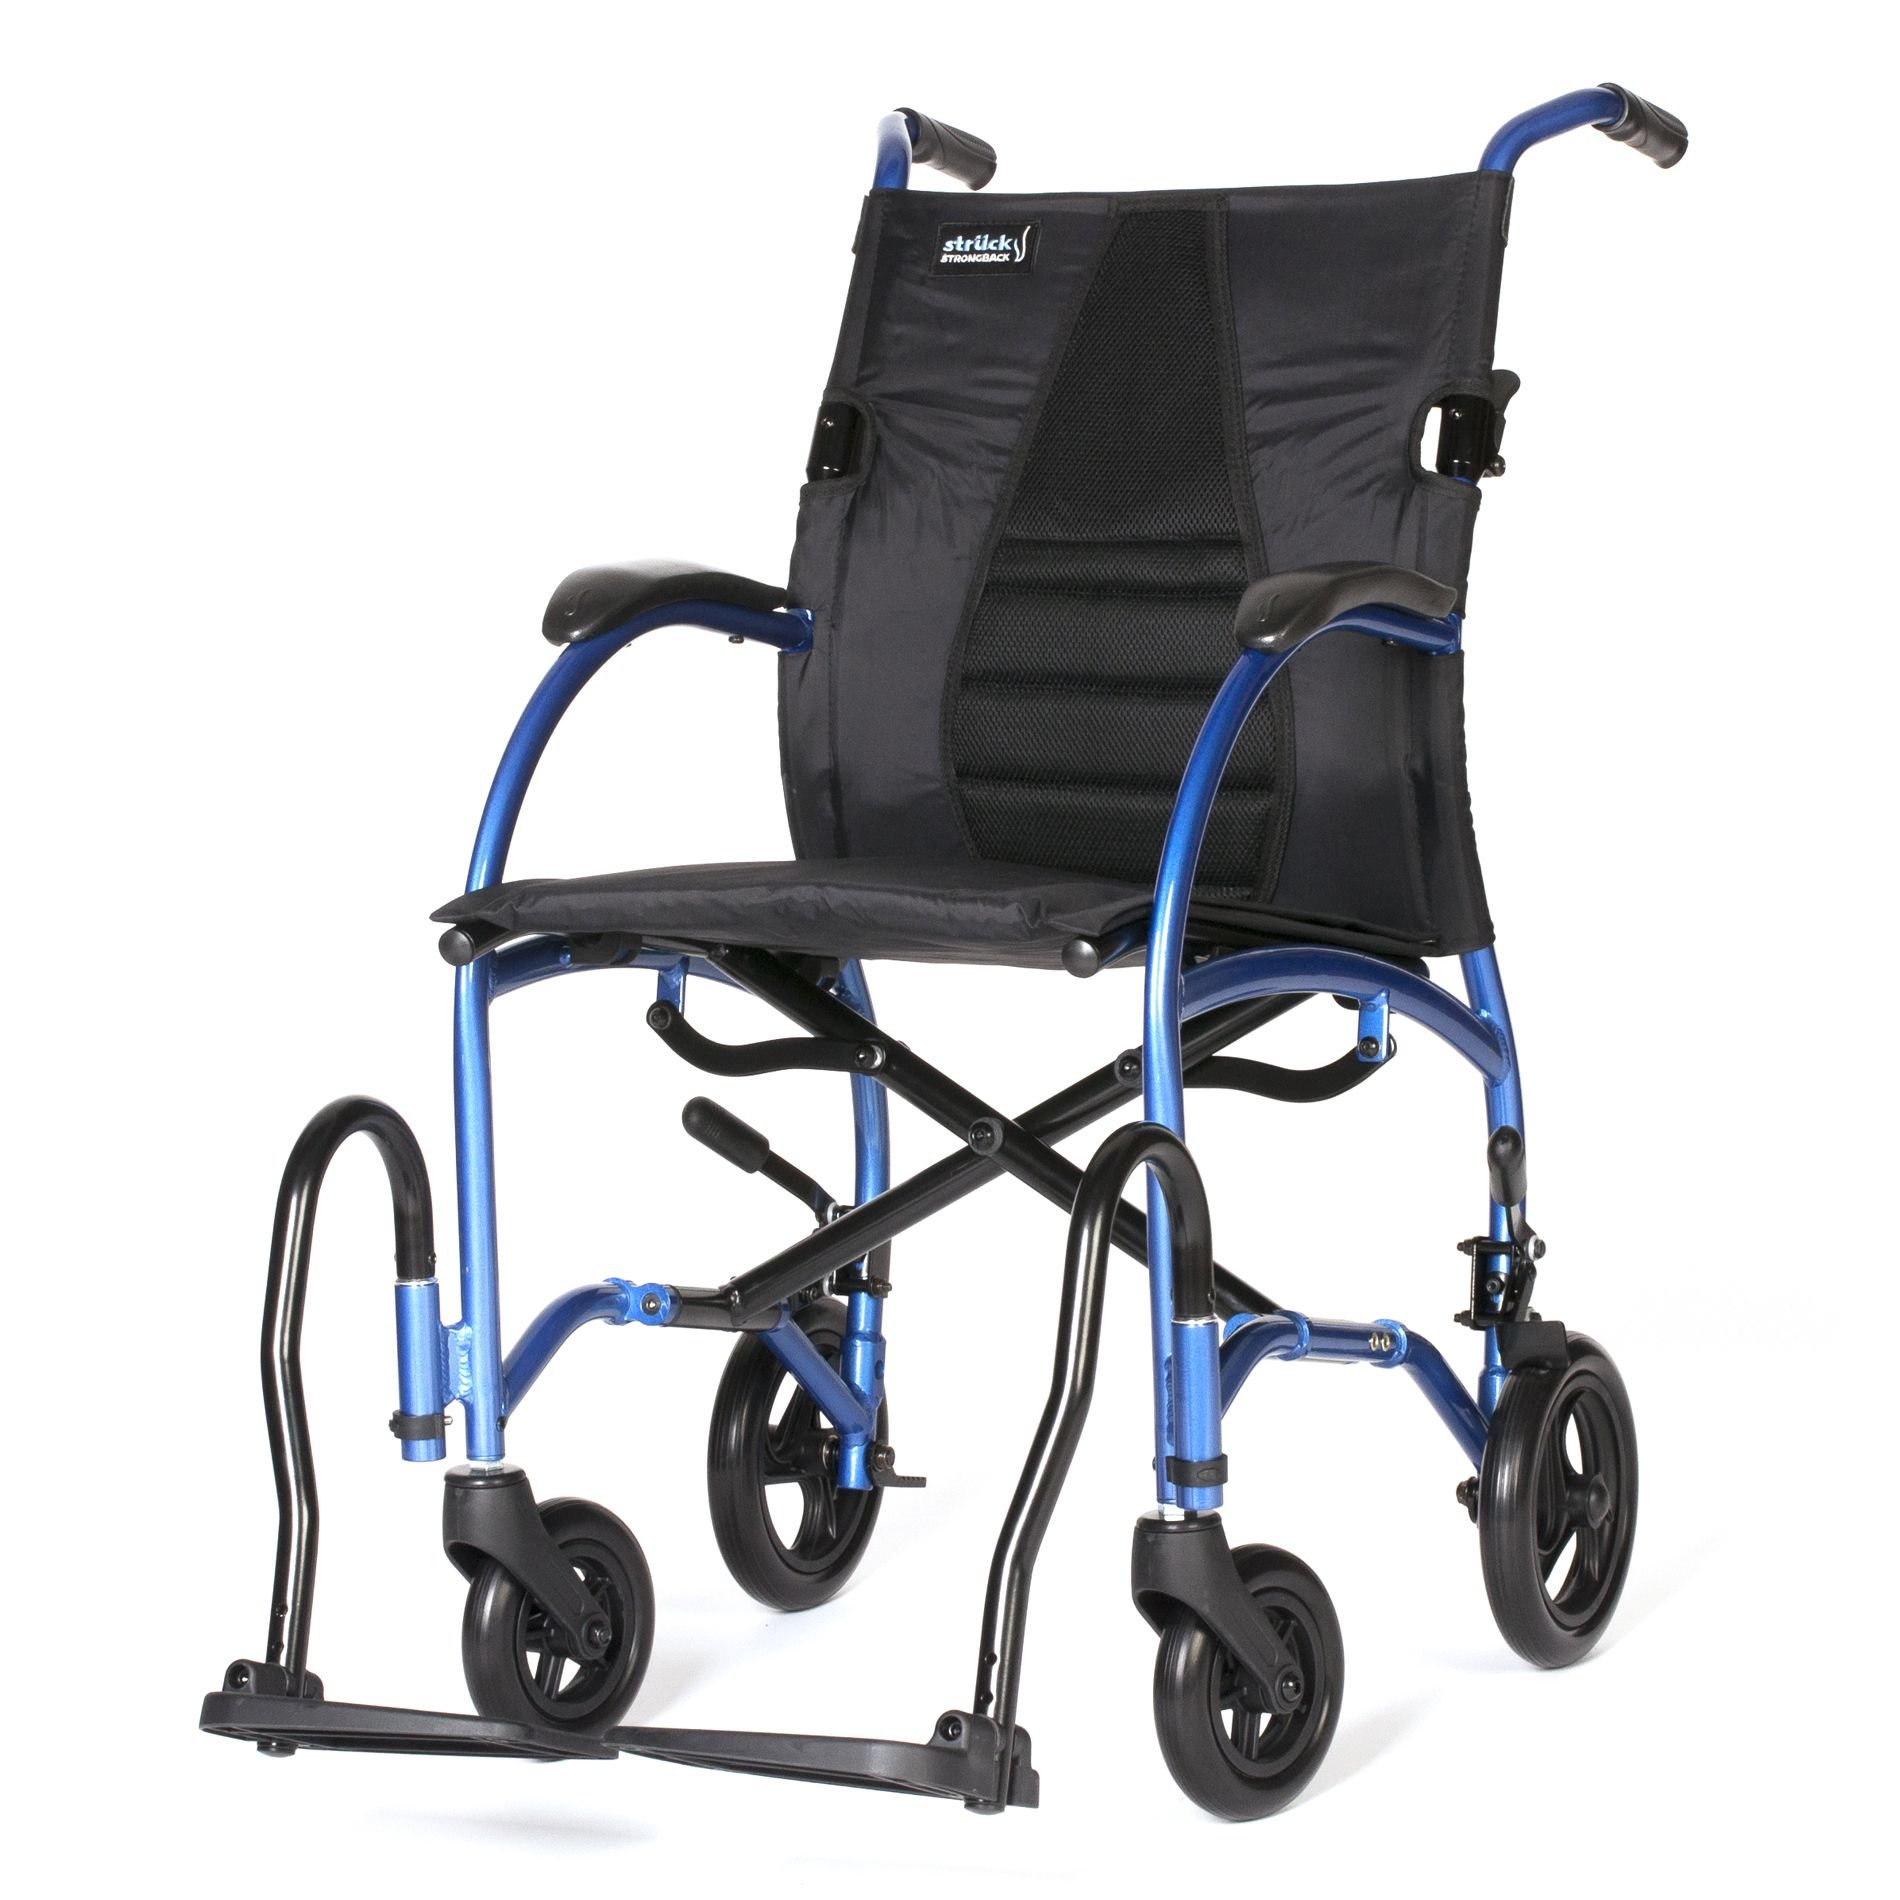 The Strongback Mobility Wheelchair - Second Place winner of the HME Retail Product award (sponsored by HomeCare magazine), Lightweight Portable Wheelchair for Healthy Posture and a Strong Back-1002